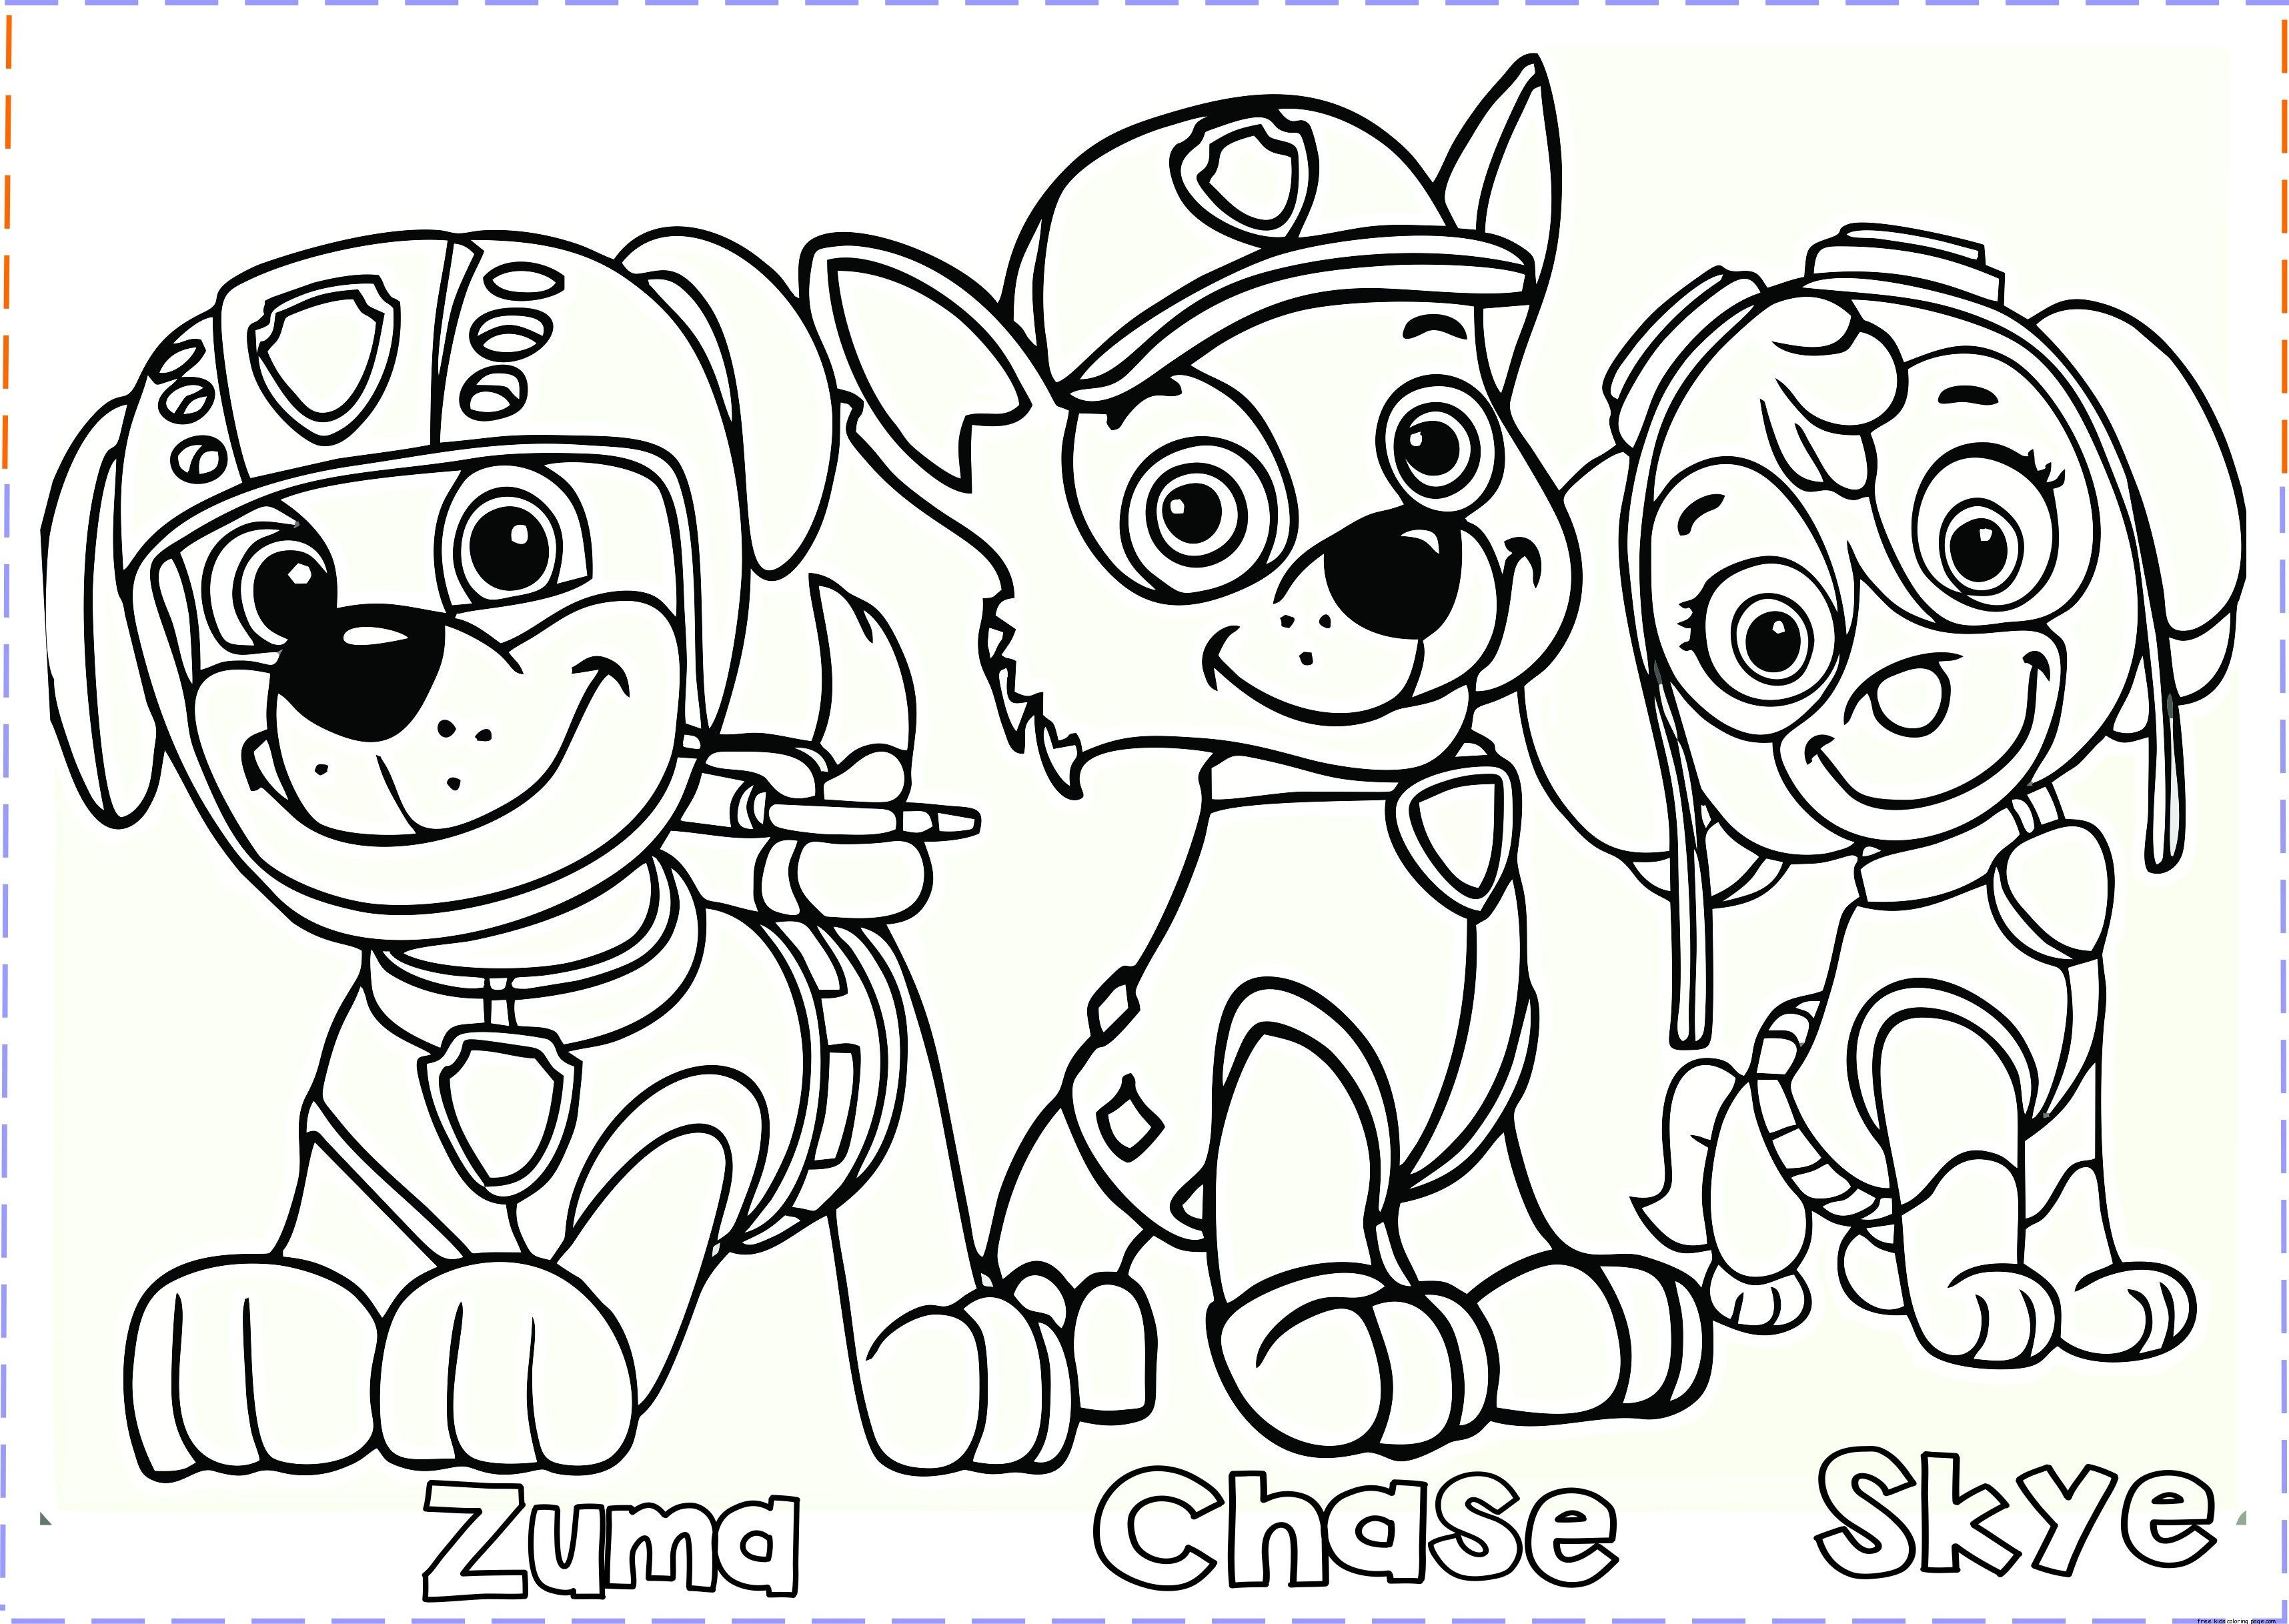 Chase Paw Patrol Coloring Page Lovely Chase Paw Patrol Coloring Page In 2020 Paw Patrol Coloring Pages Paw Patrol Coloring Puppy Coloring Pages